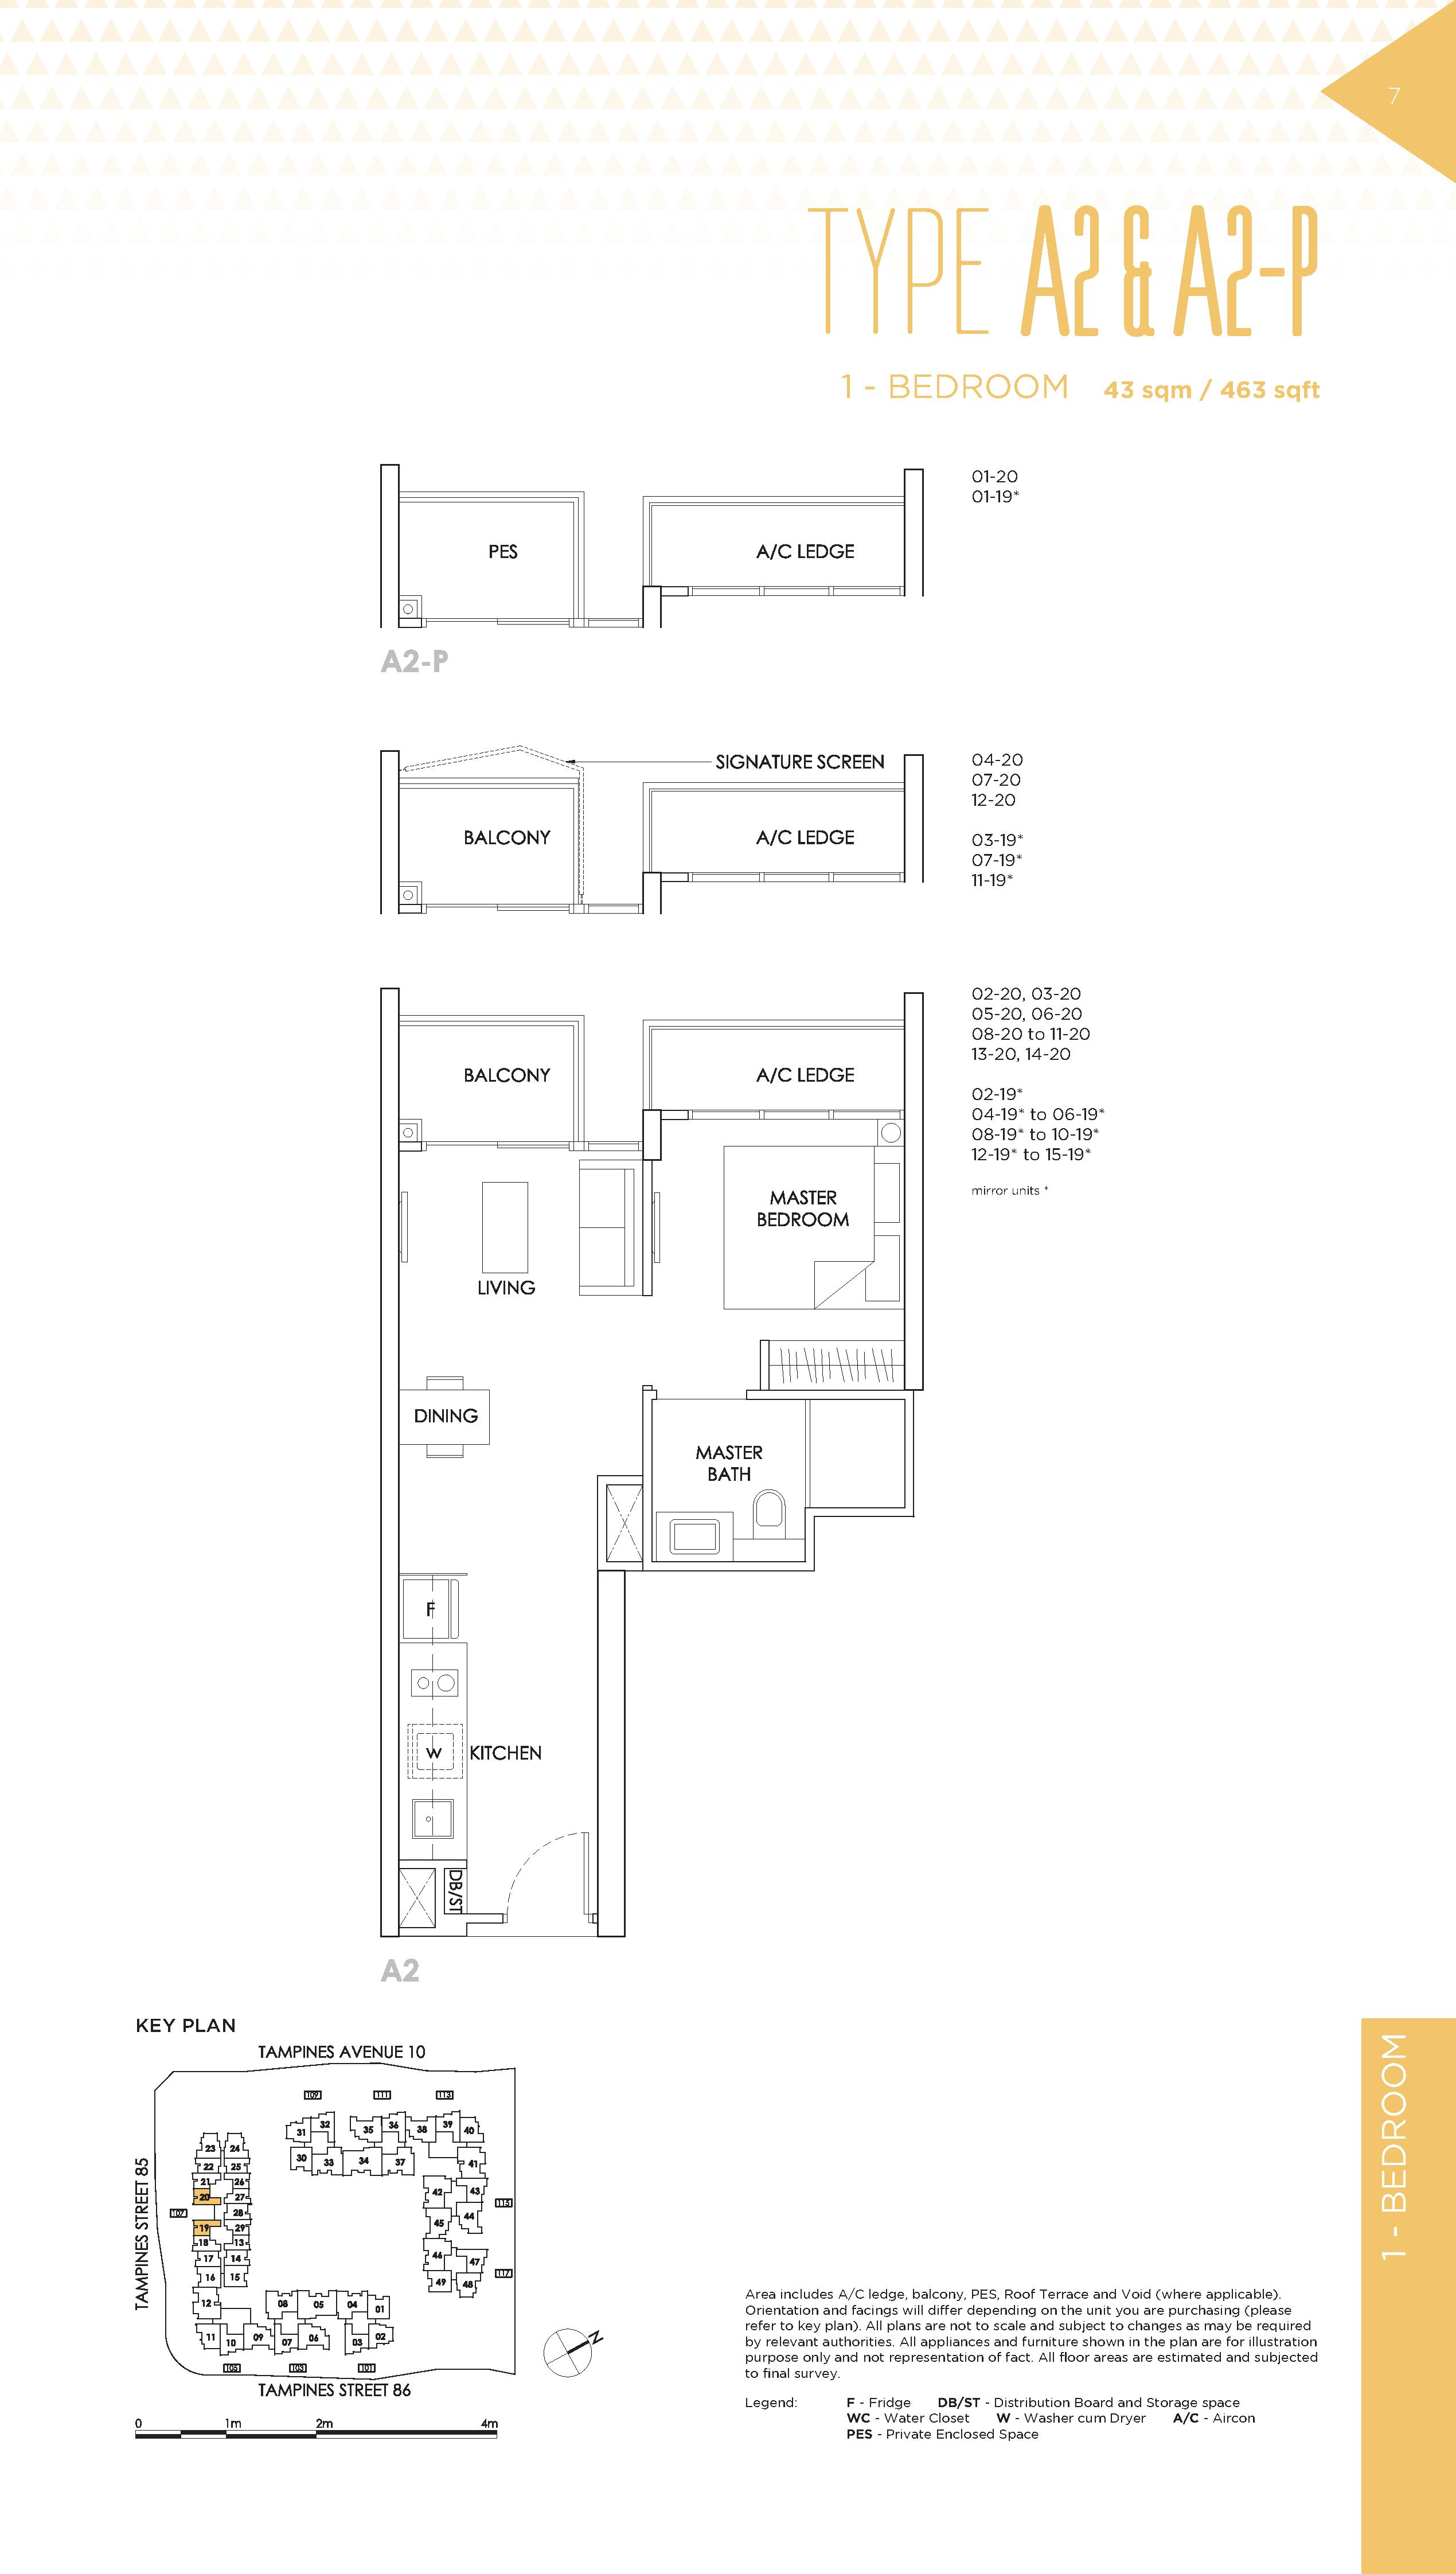 The Alps Residences 1 Bedroom Floor Plans Type A2 & A2-P